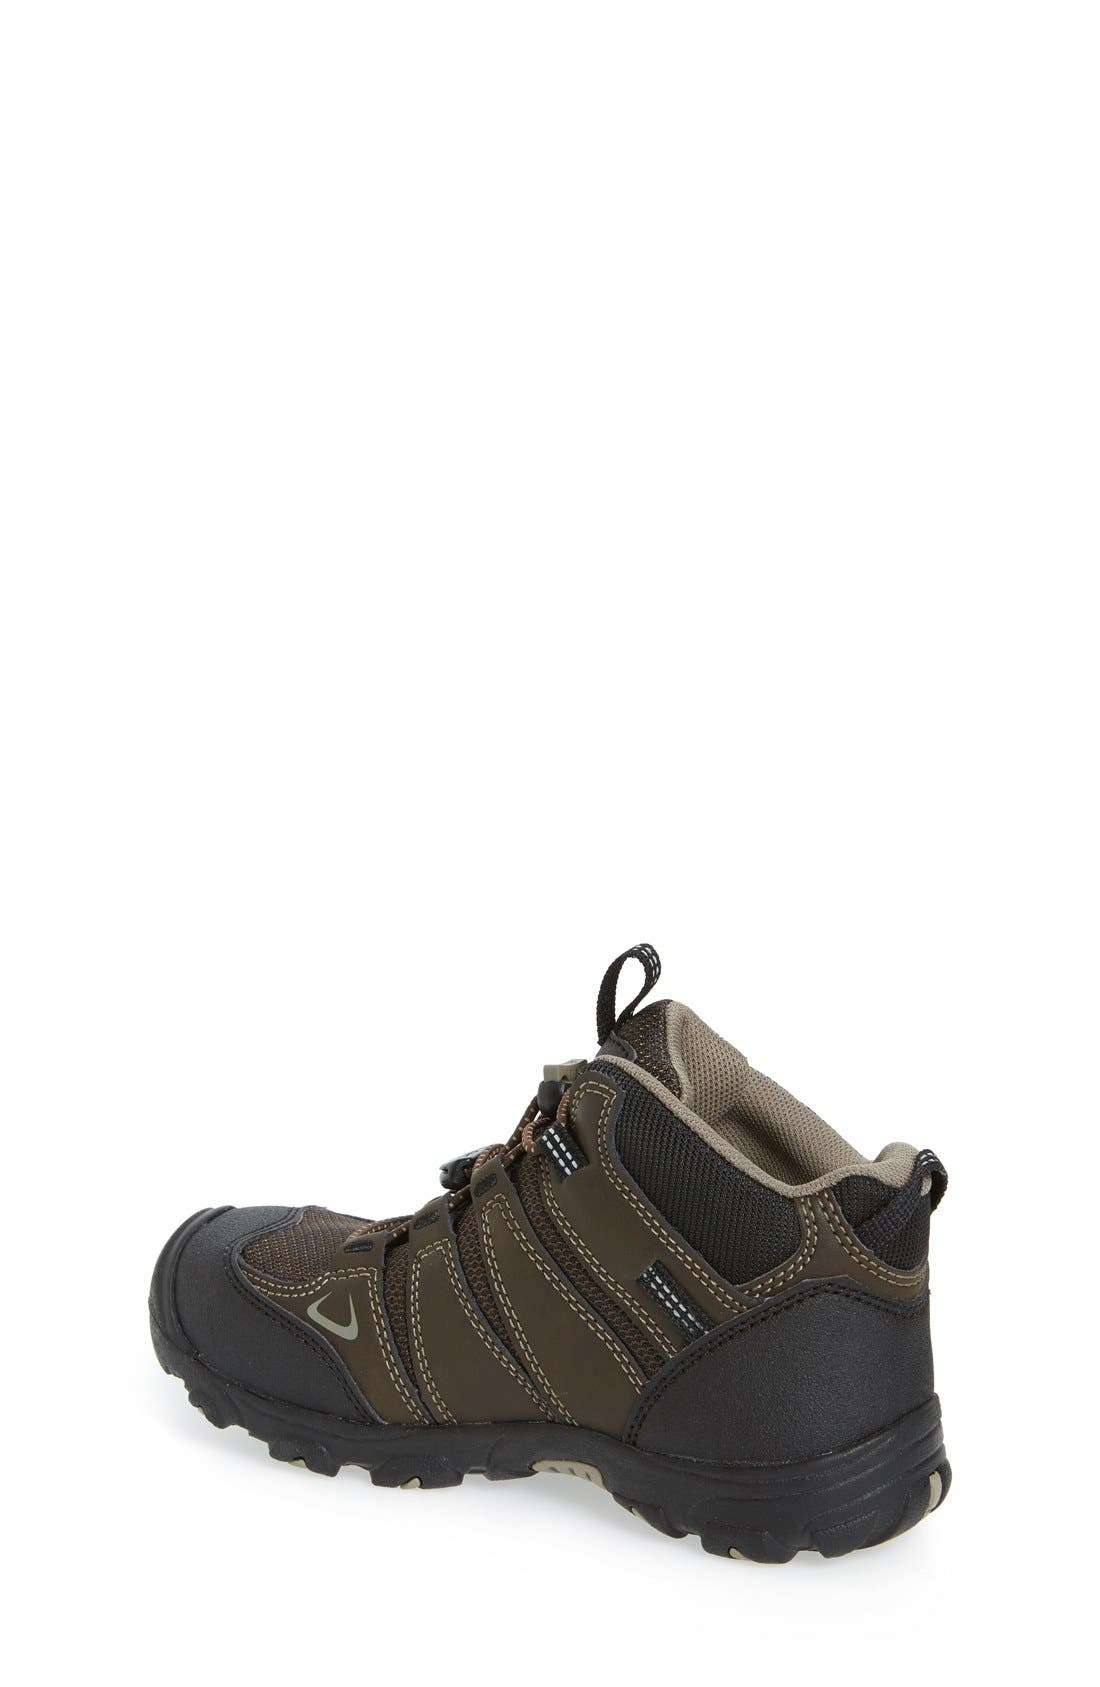 'Oakridge' Waterproof Hiking Boot,                             Alternate thumbnail 2, color,                             210